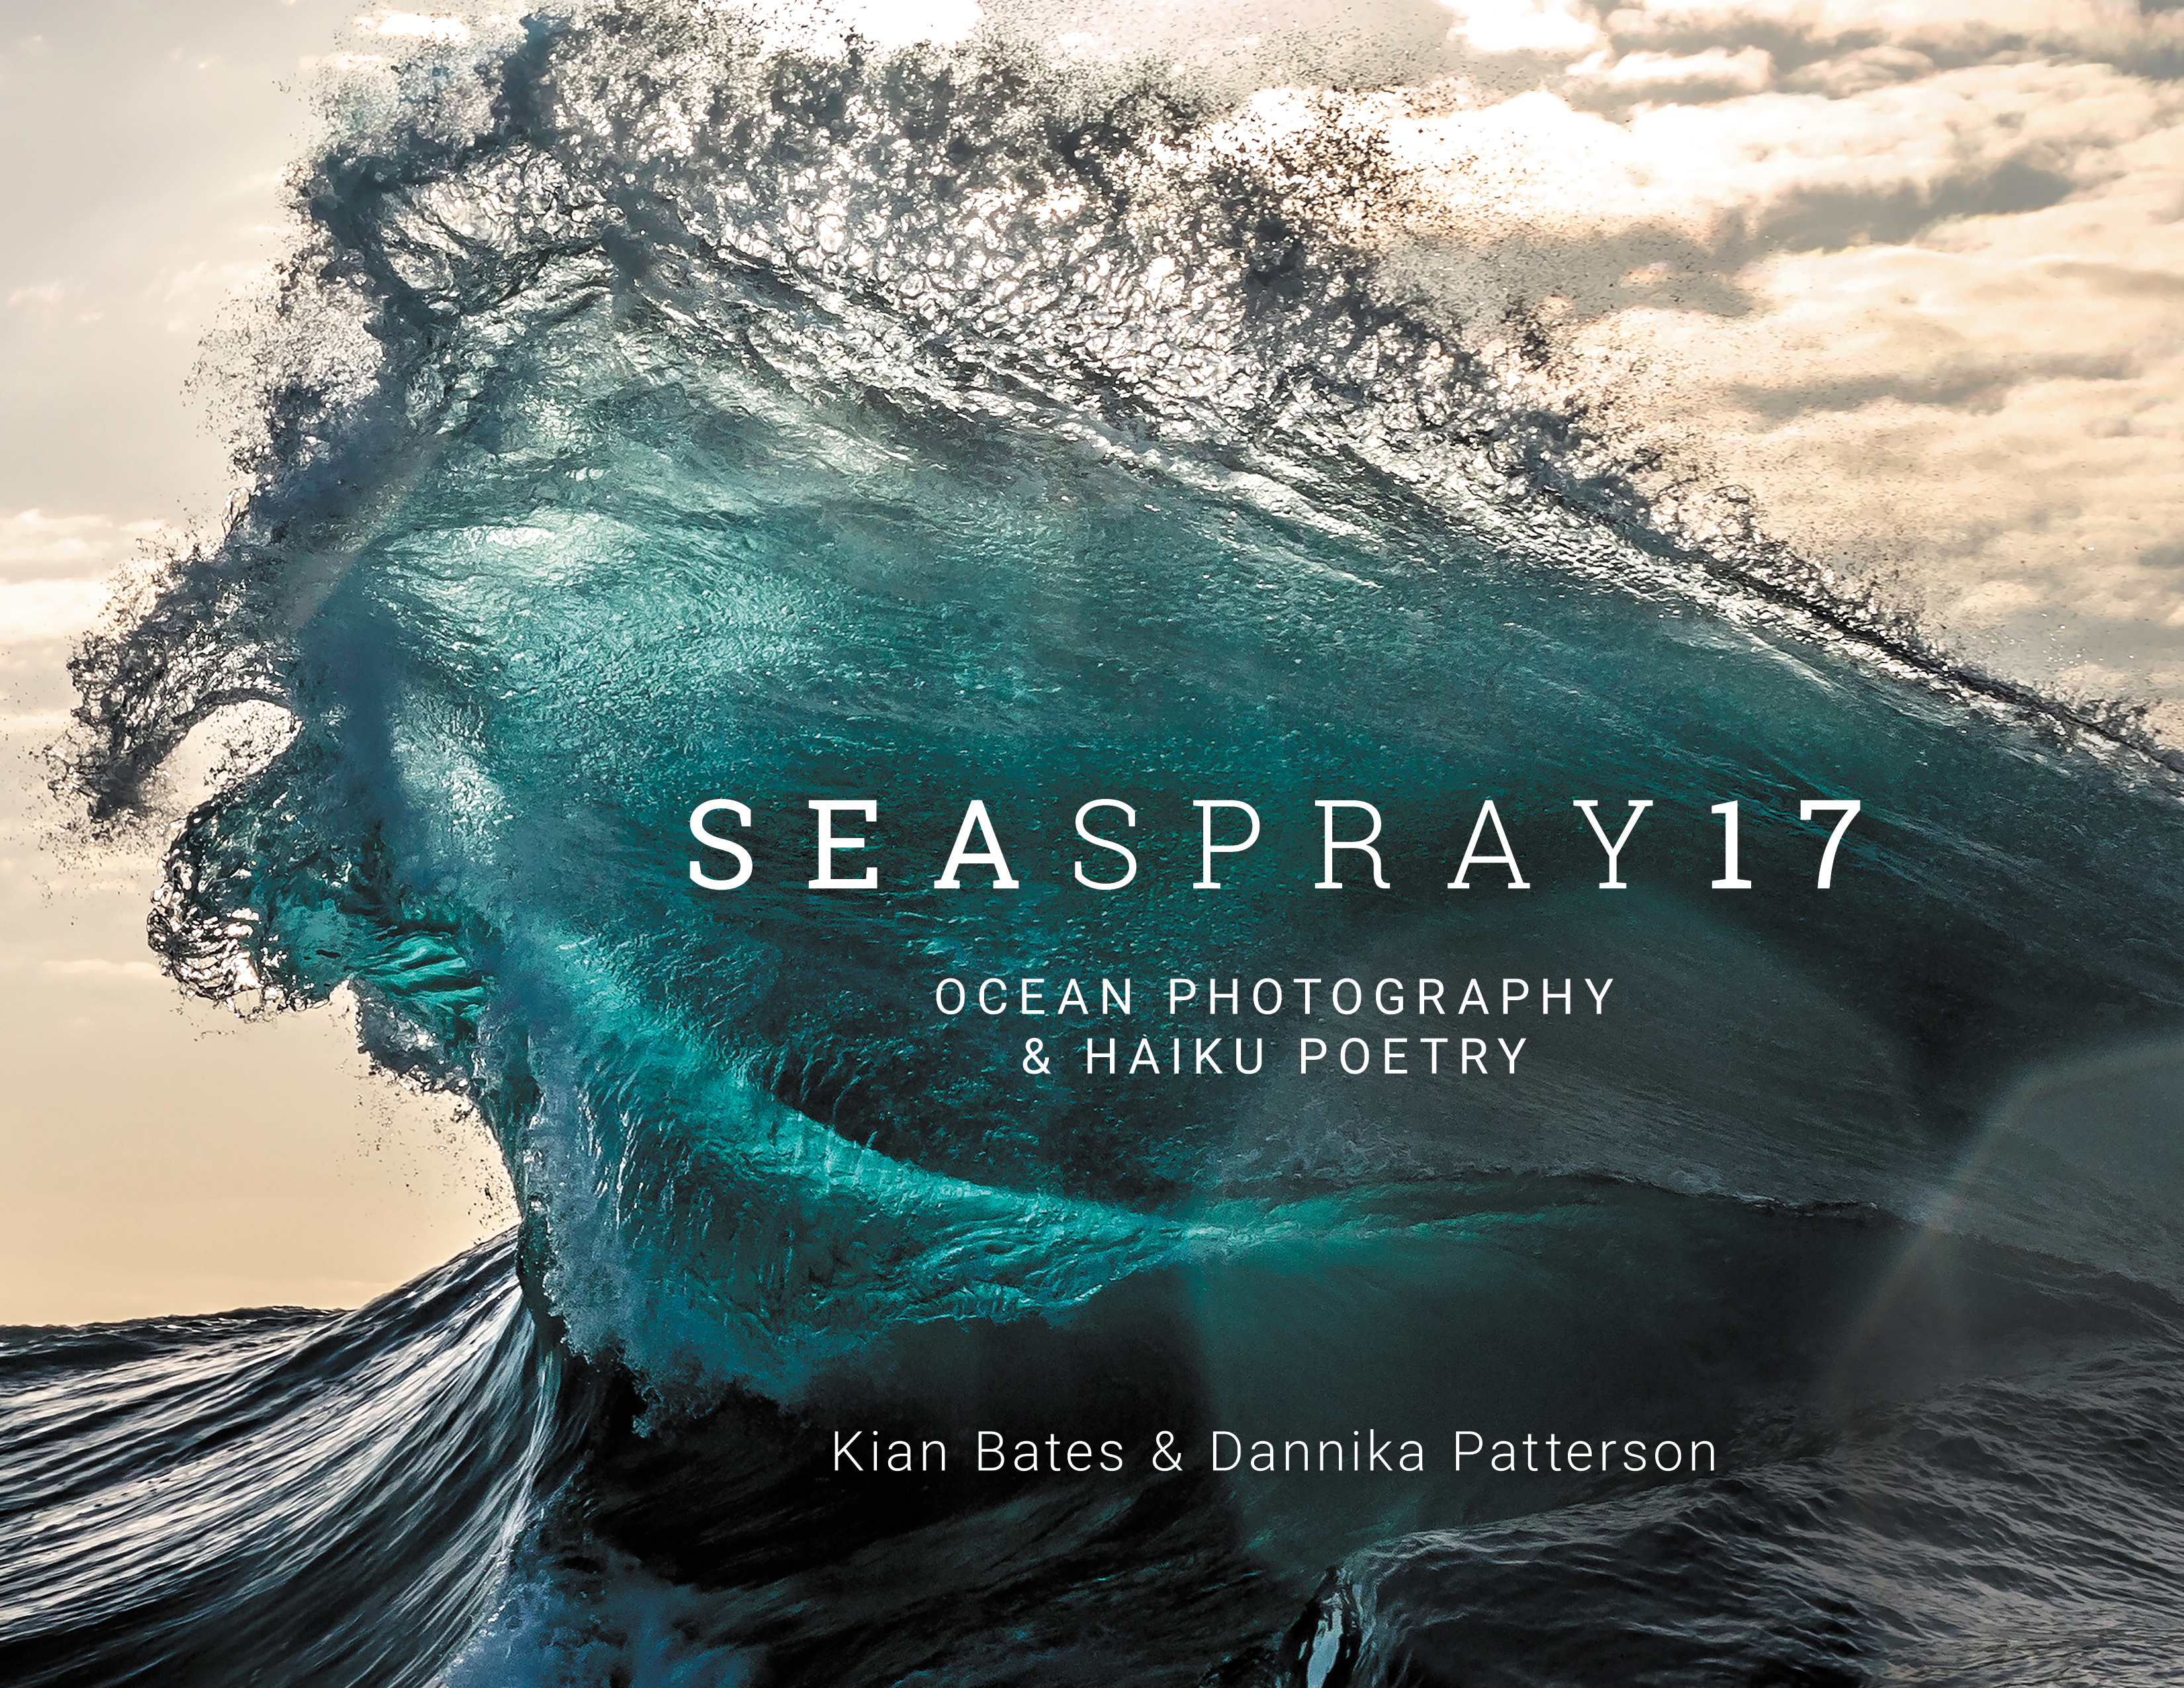 dpatterson-seaspary17-cover-print